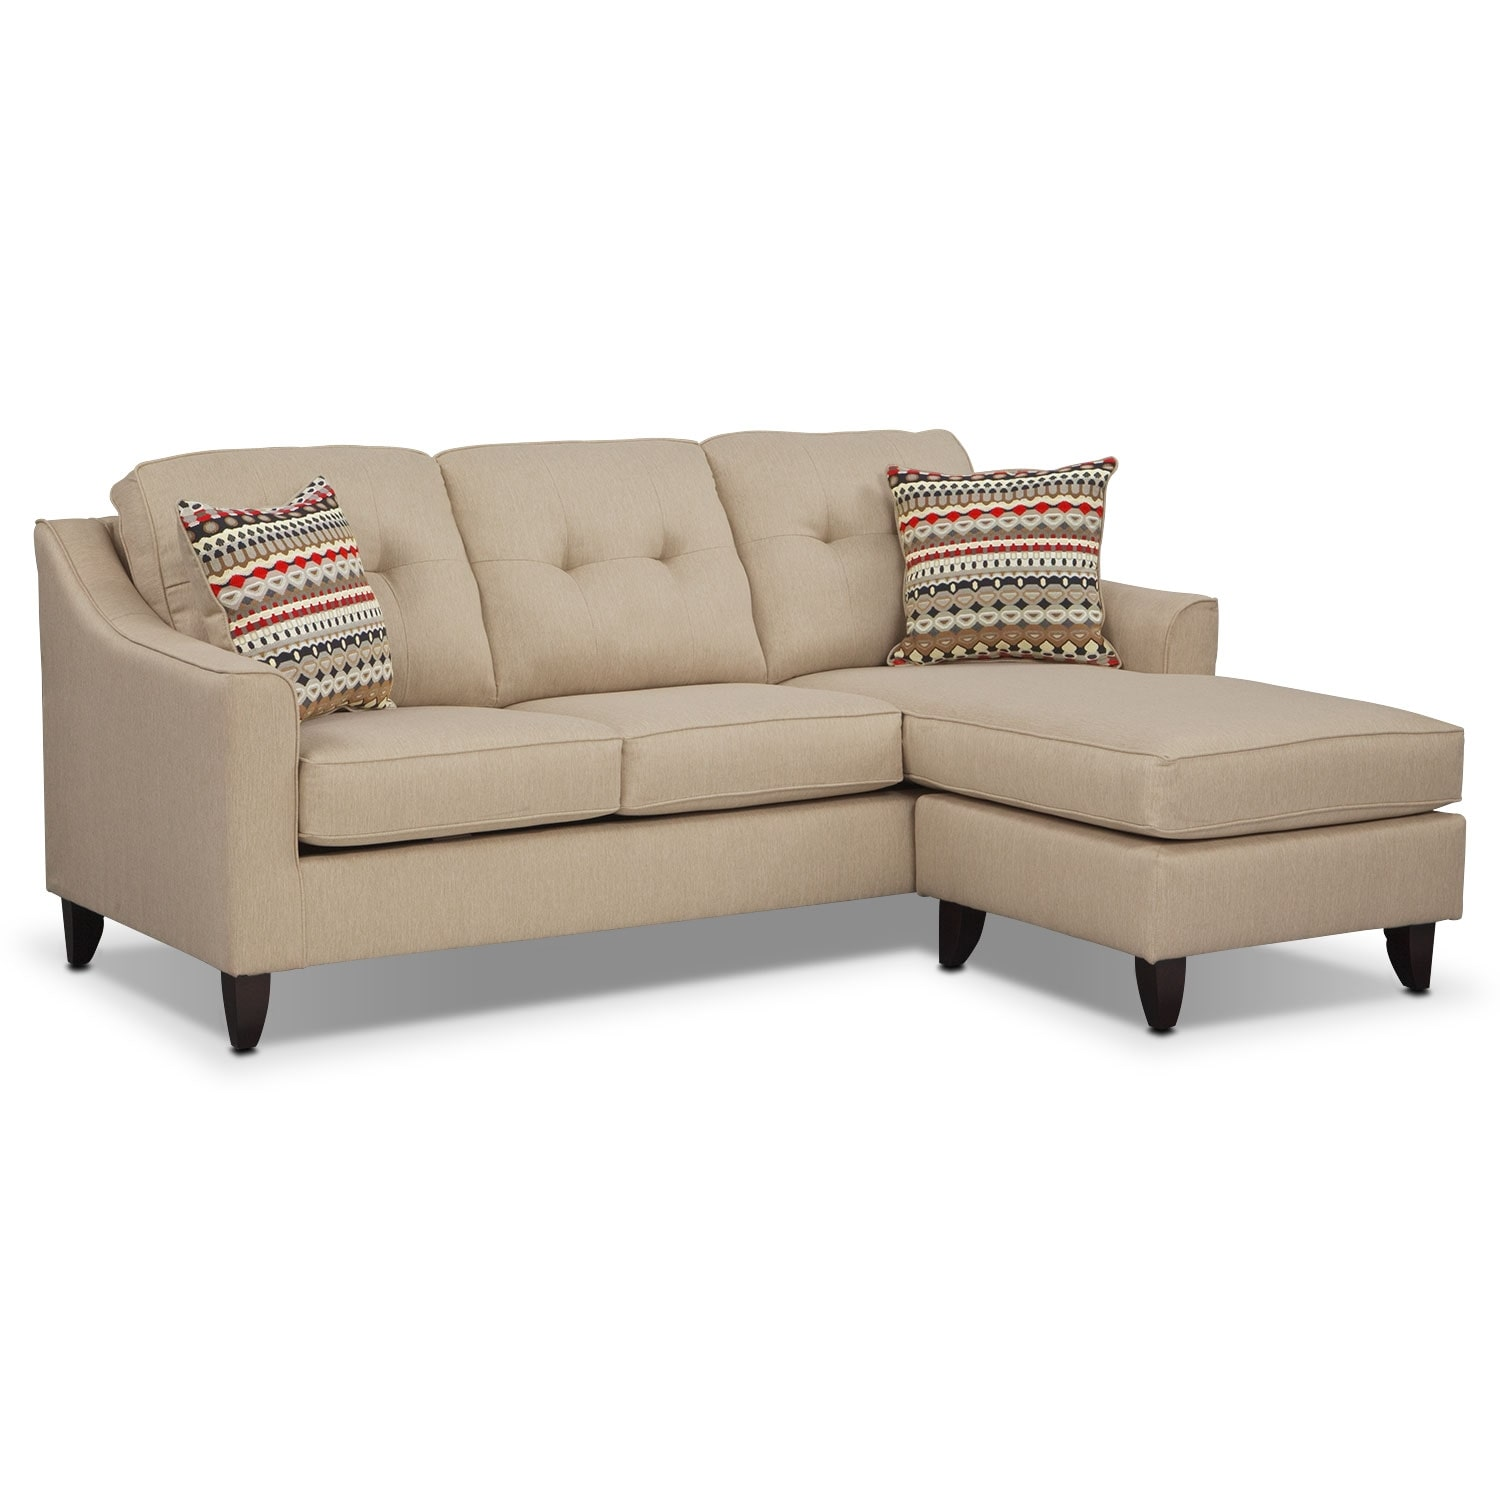 marco cream chaise sofa by factory outlet century leather sofas american signature furniture